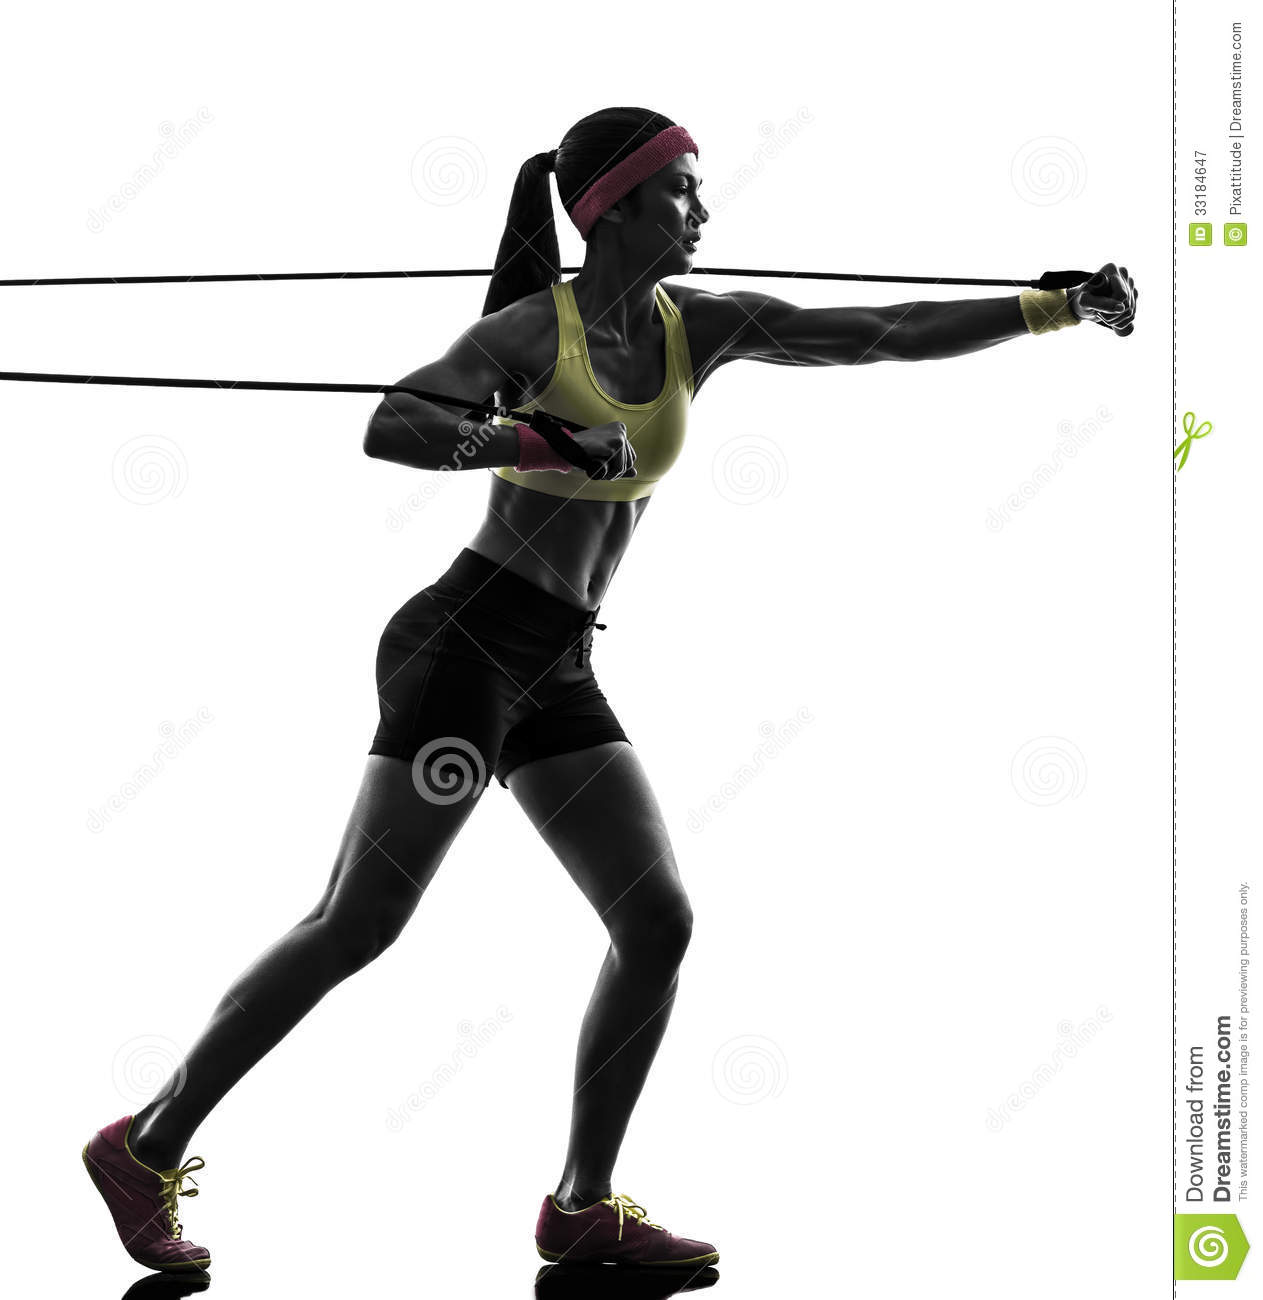 Woman 2013 Bands: Woman Exercising Fitness Workout Resistance Bands